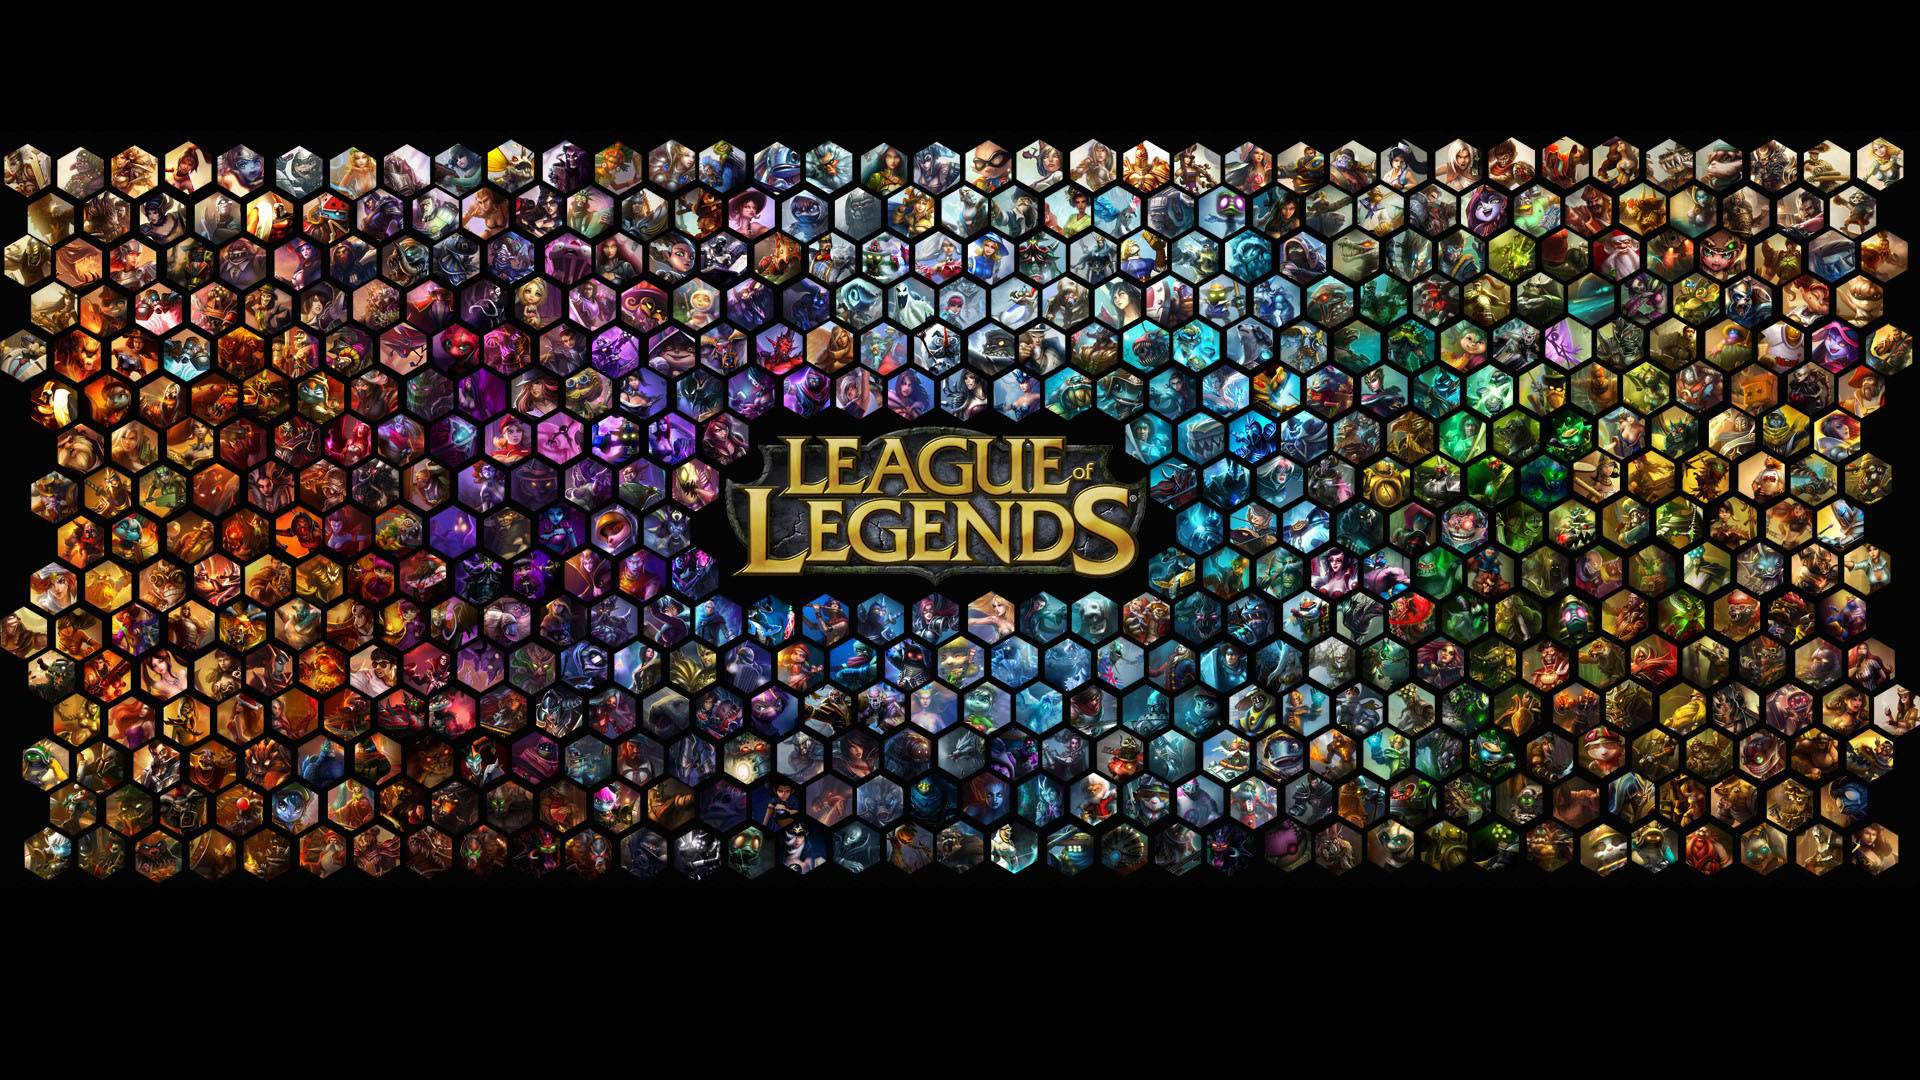 league of legends wallpaper 1920x1080 hd - | Images And Wallpapers .